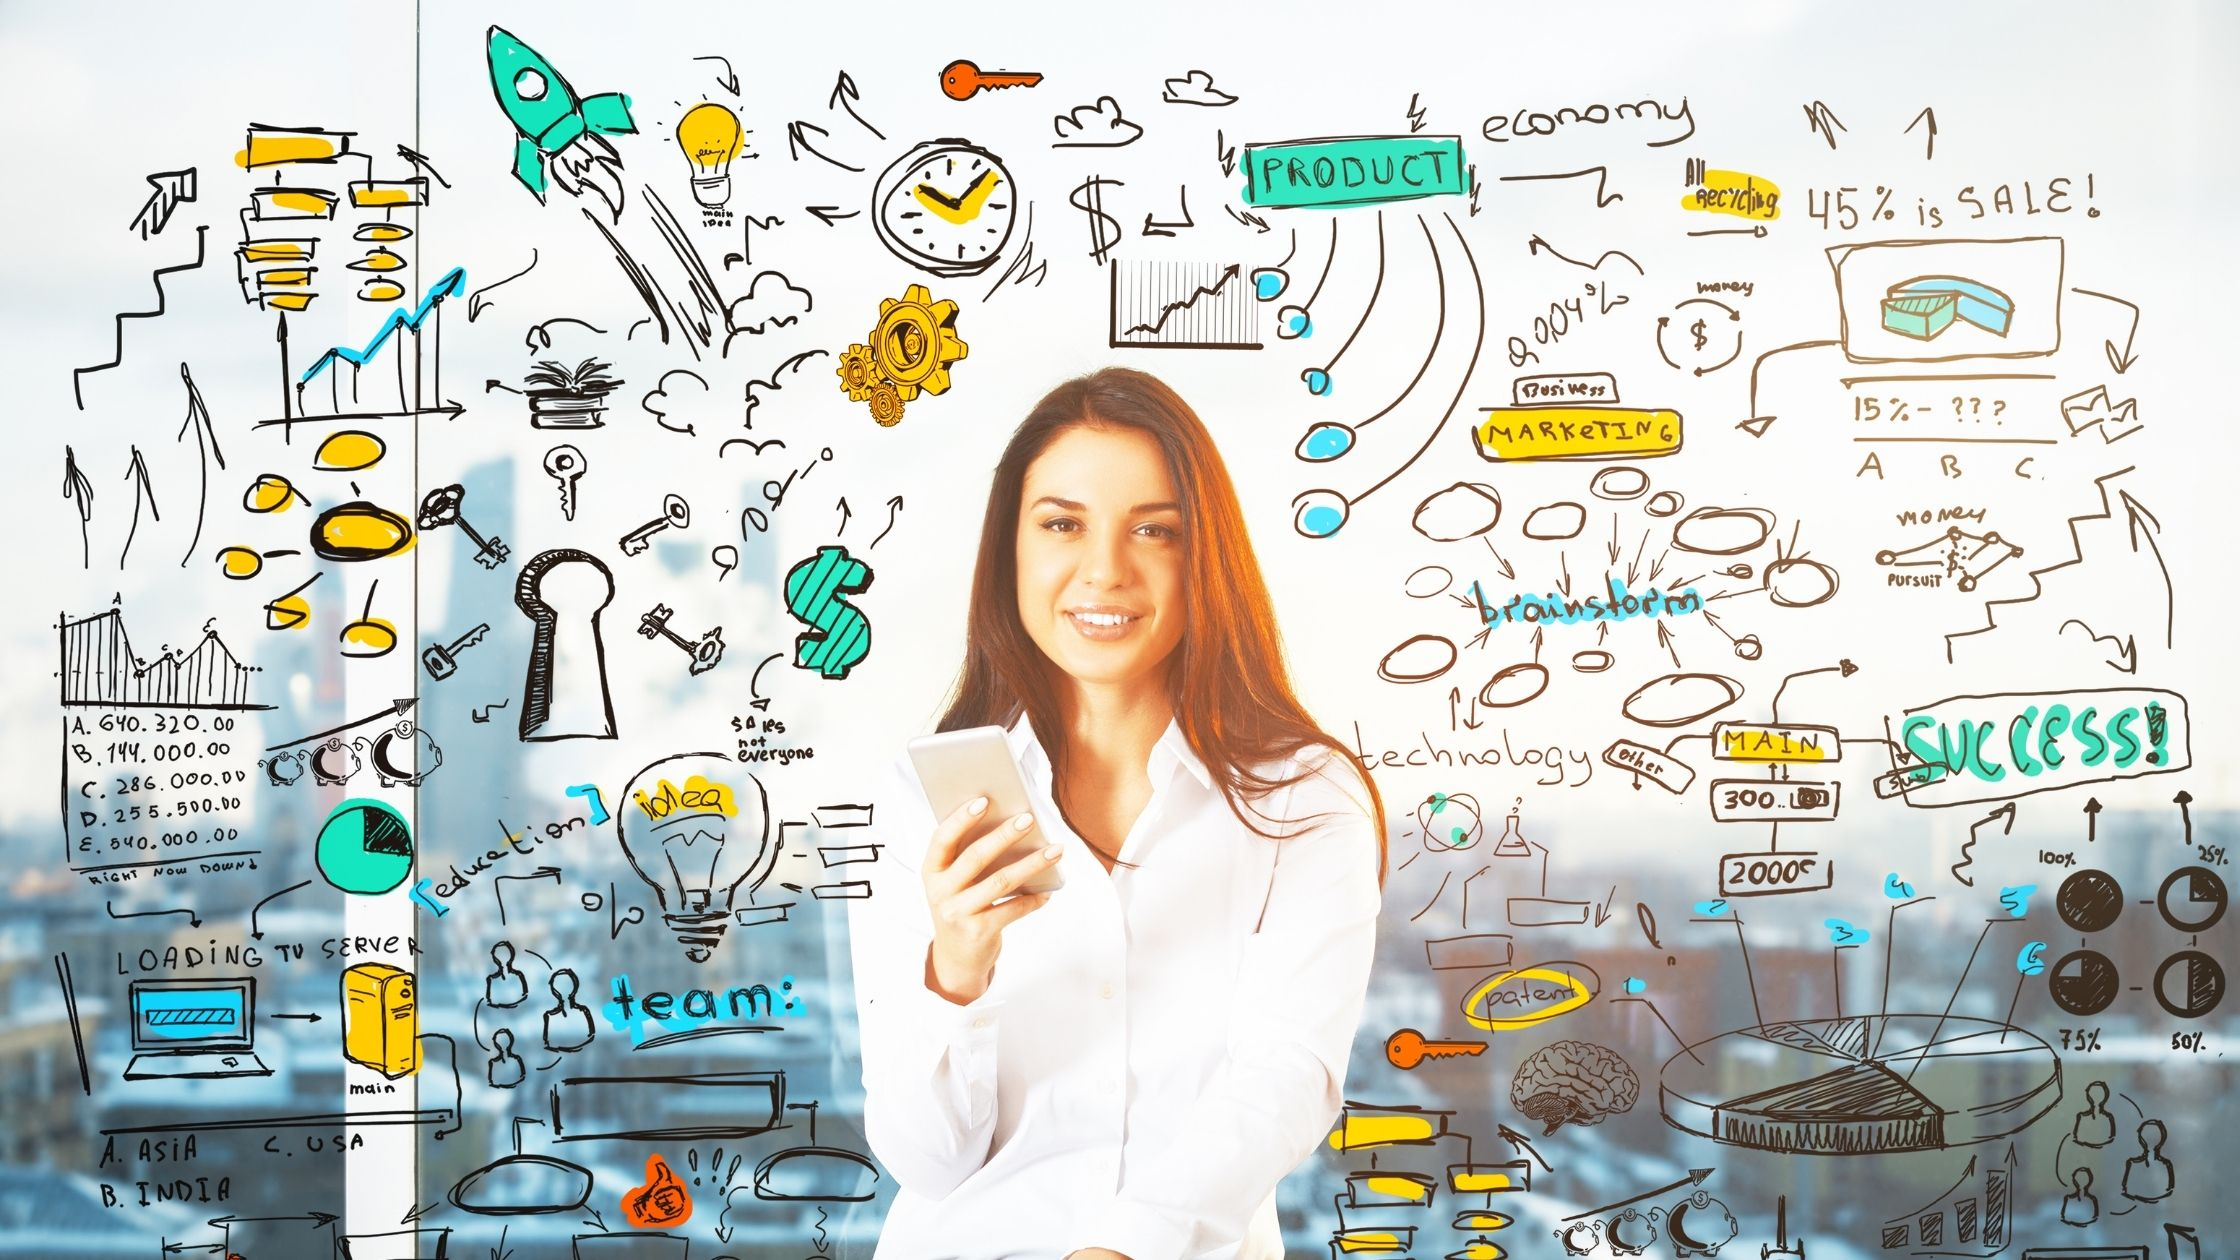 strategies for internet marketing image show a long-hair smiling woman in a white long-sleeve shirt holding a smartphone with her right hand, around her a lot of drawings showing all kinds of internet strategies and business headings, in the background is an image of a blurred city